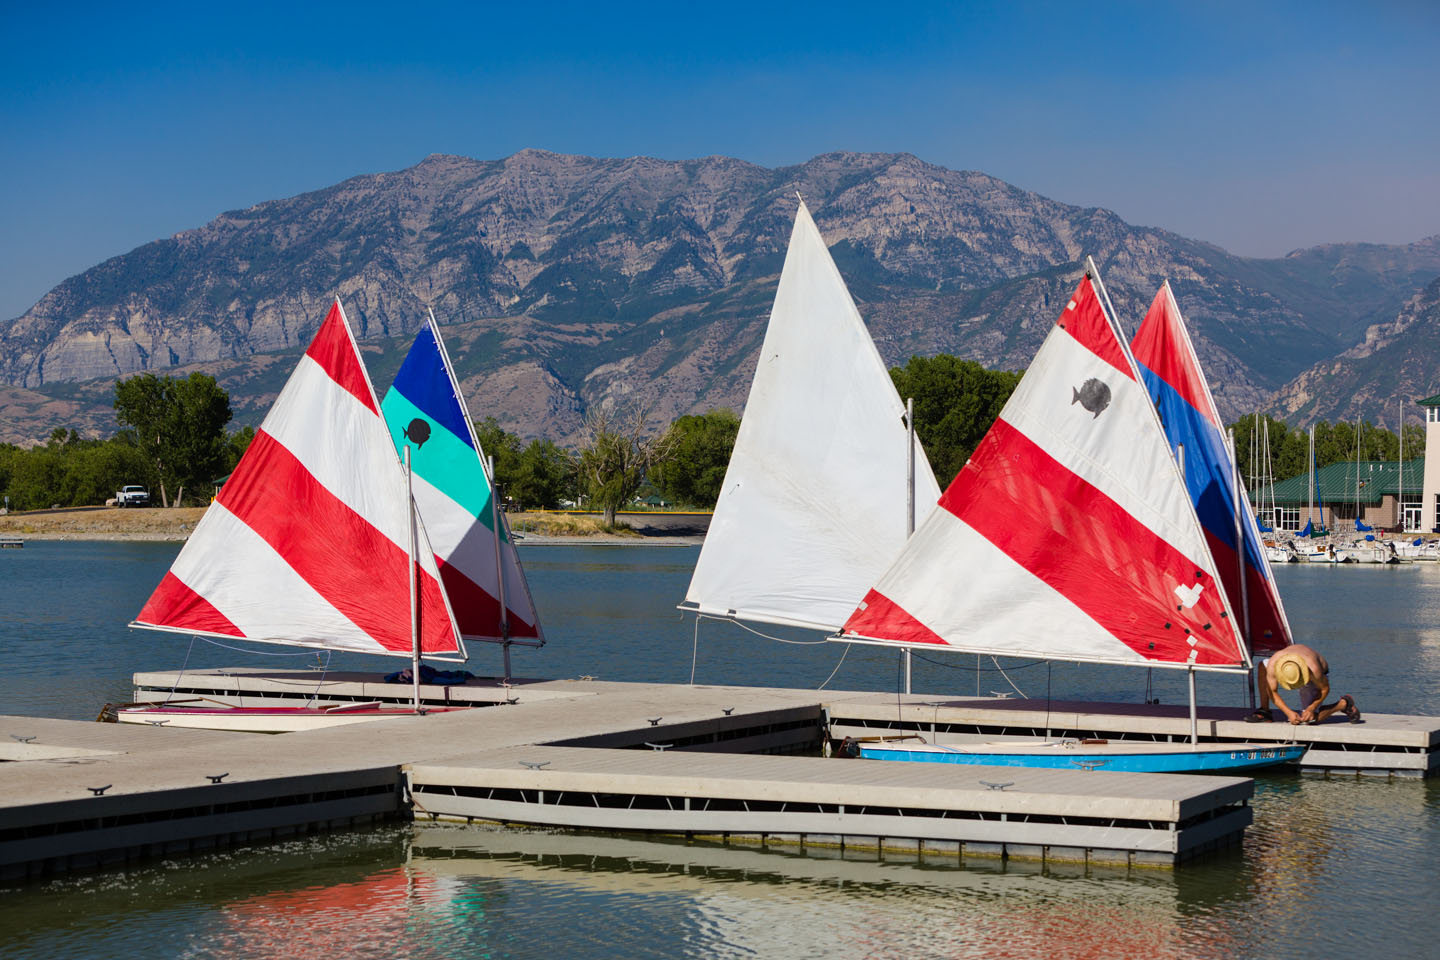 Five sailing boats ready to set sail